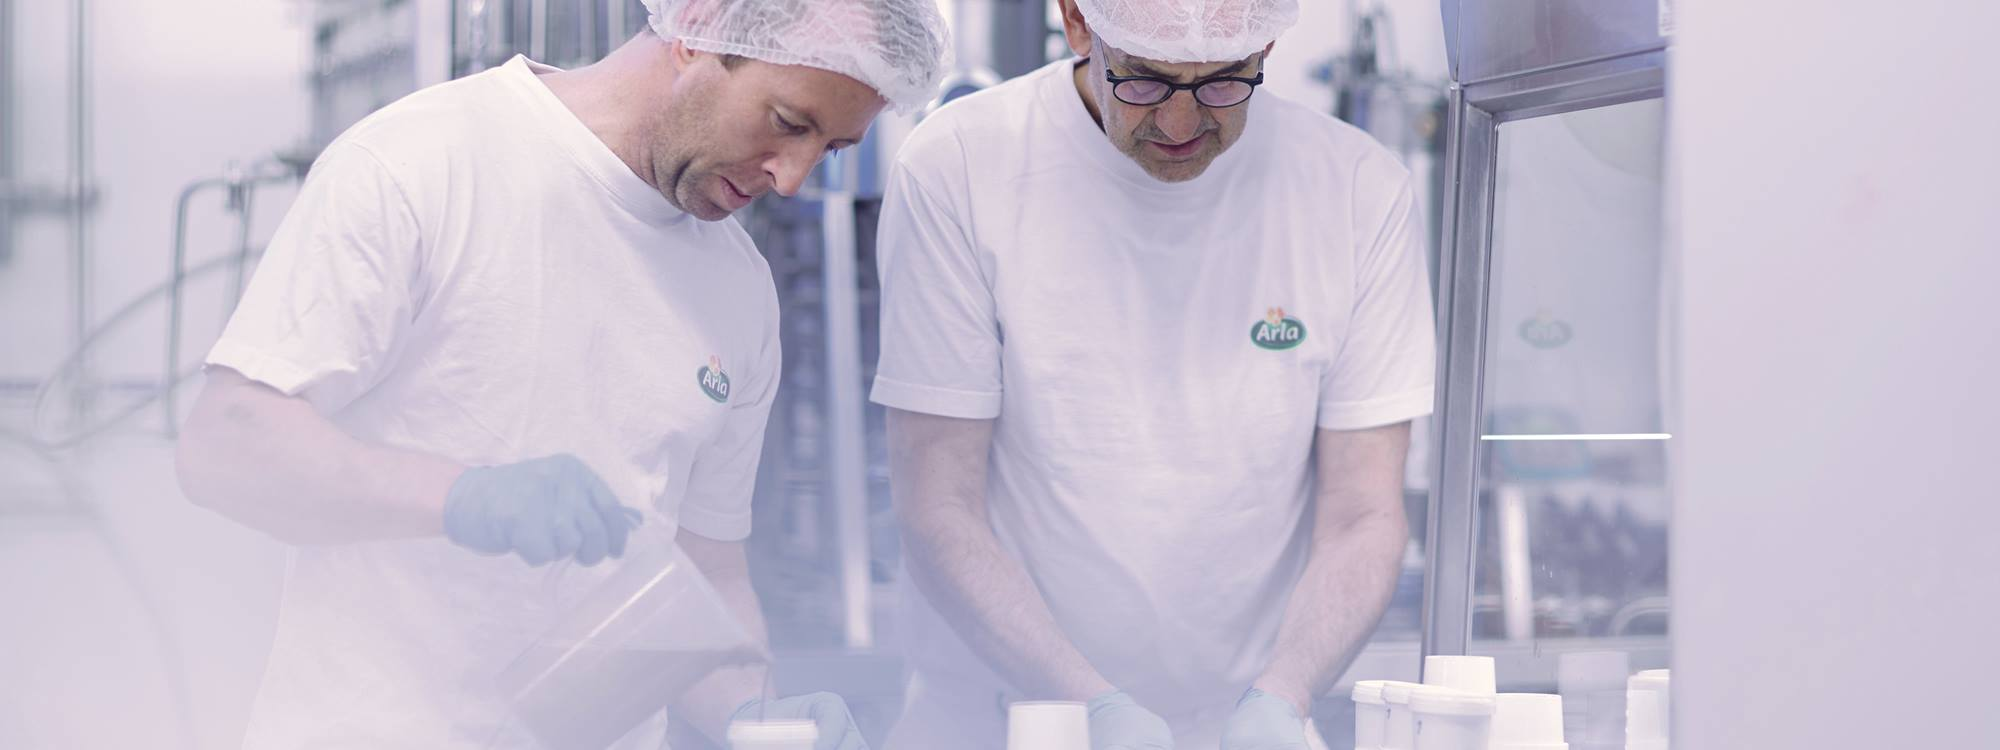 Innovation core competence nutrition dairy bakery